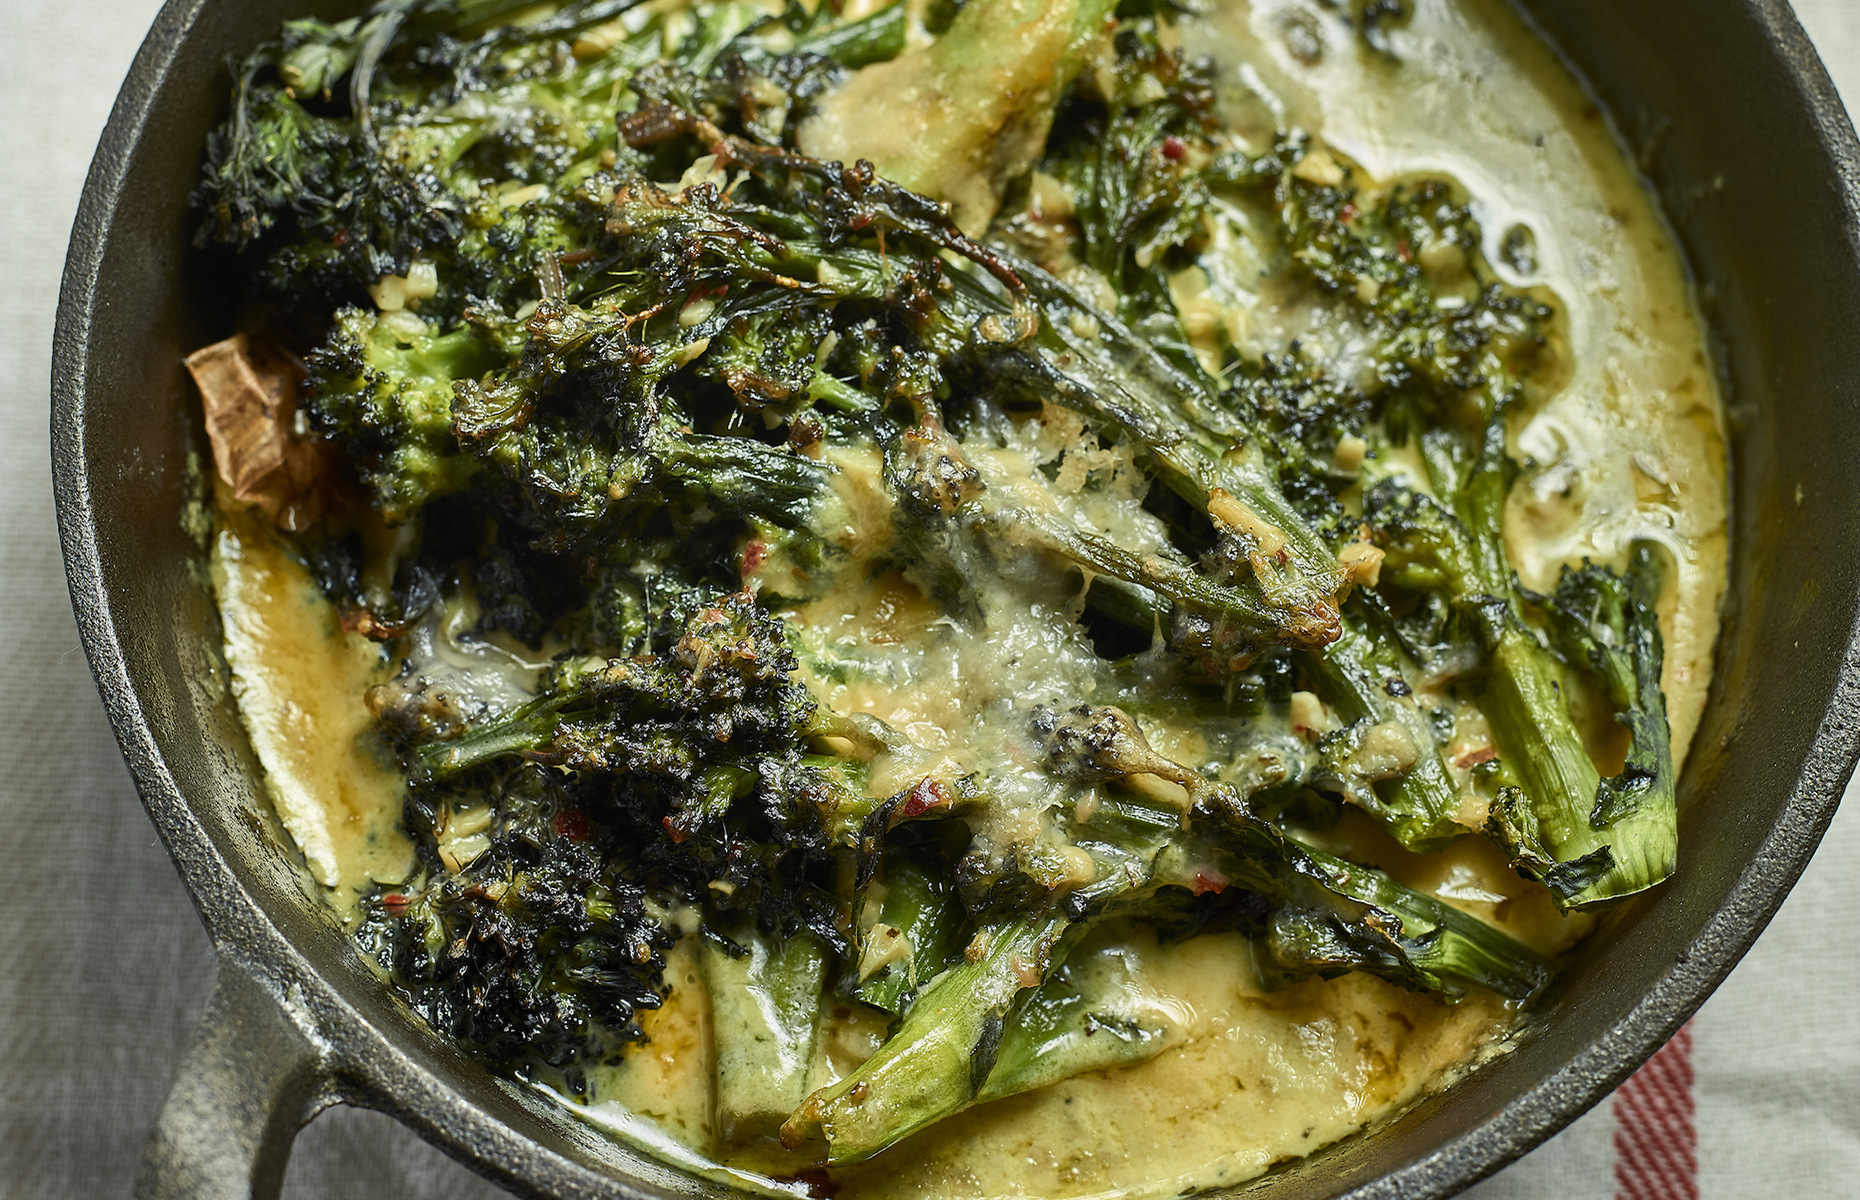 Roasted sprouting broccoli